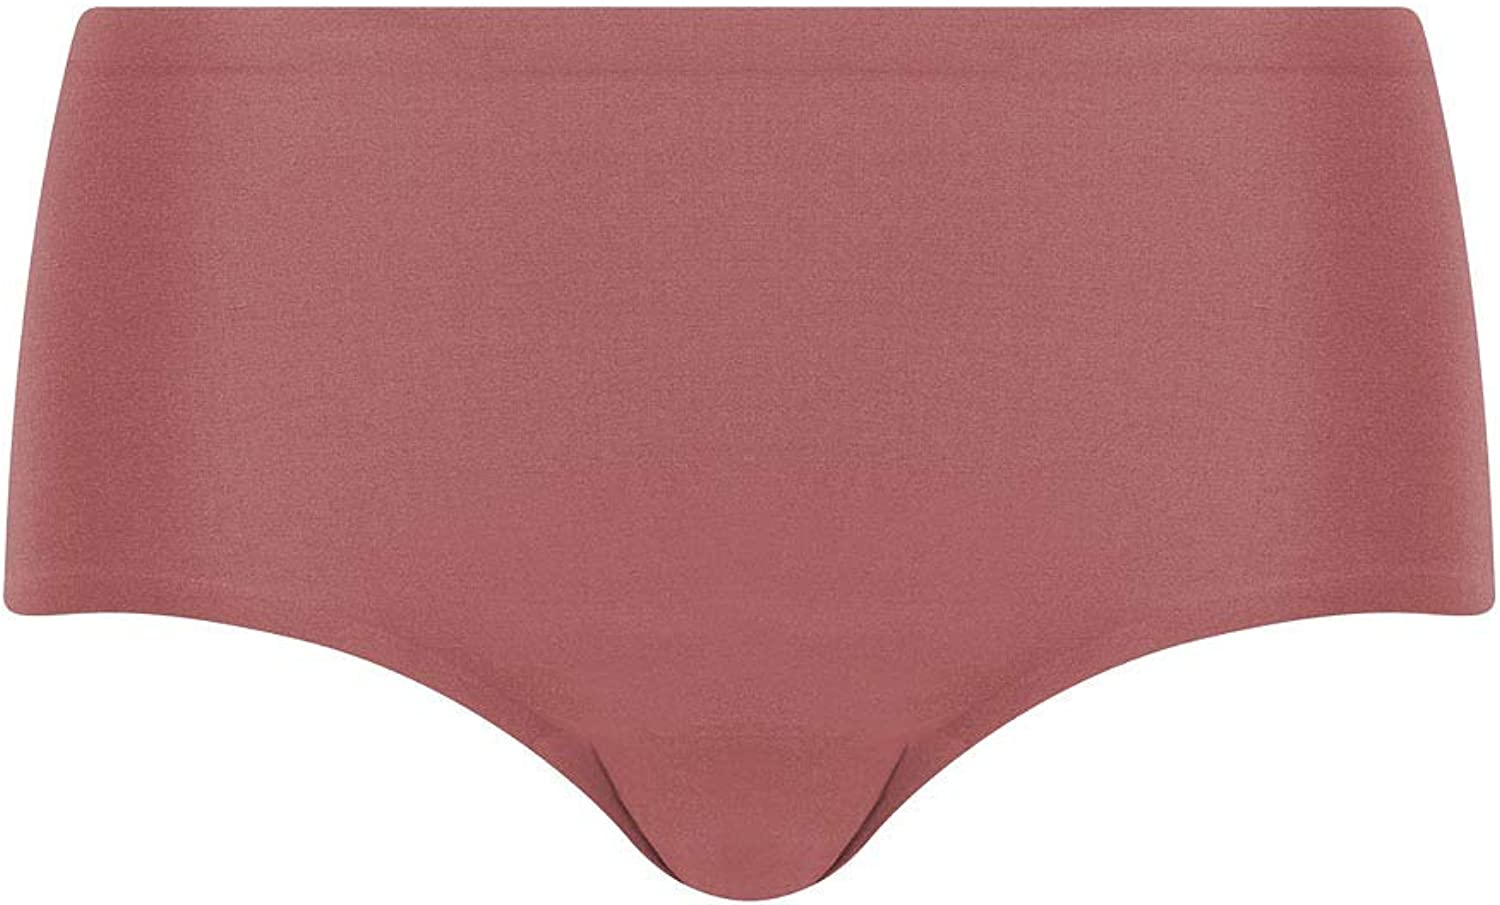 Chantelle Women's Plus Soft Stretch One Size Full Hipster